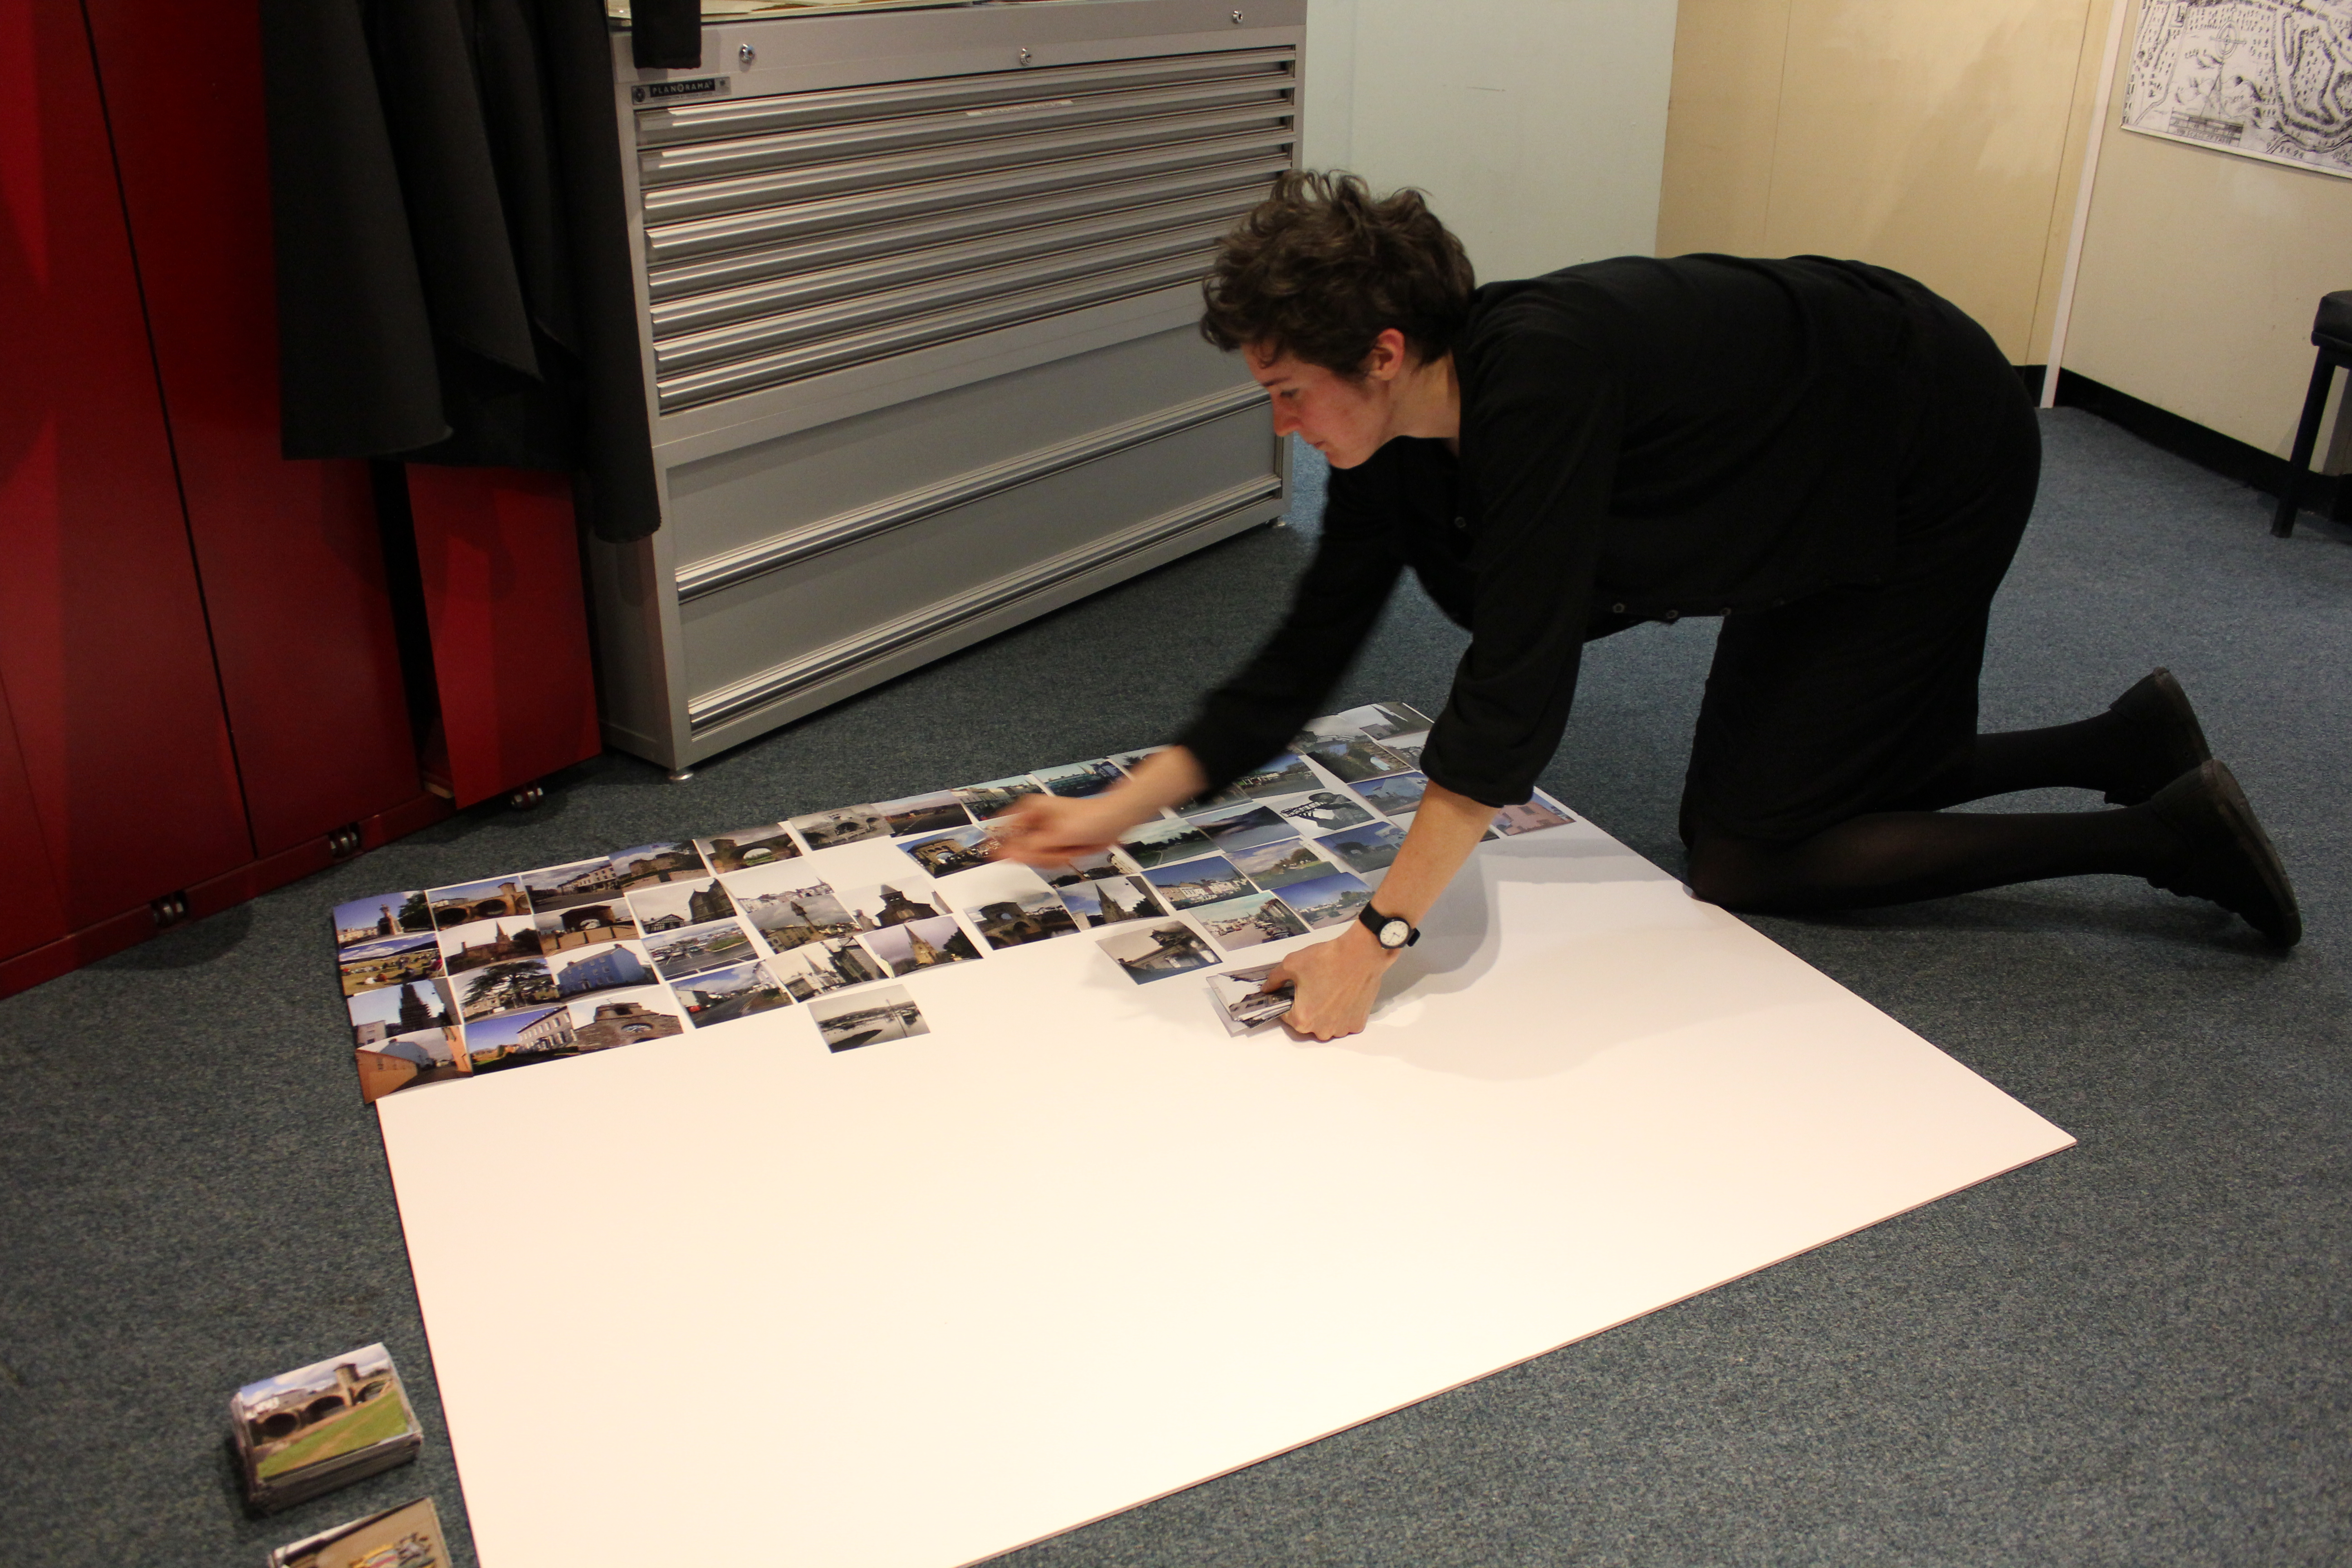 file monmouthpedia volunteer creating an exhibition of the images